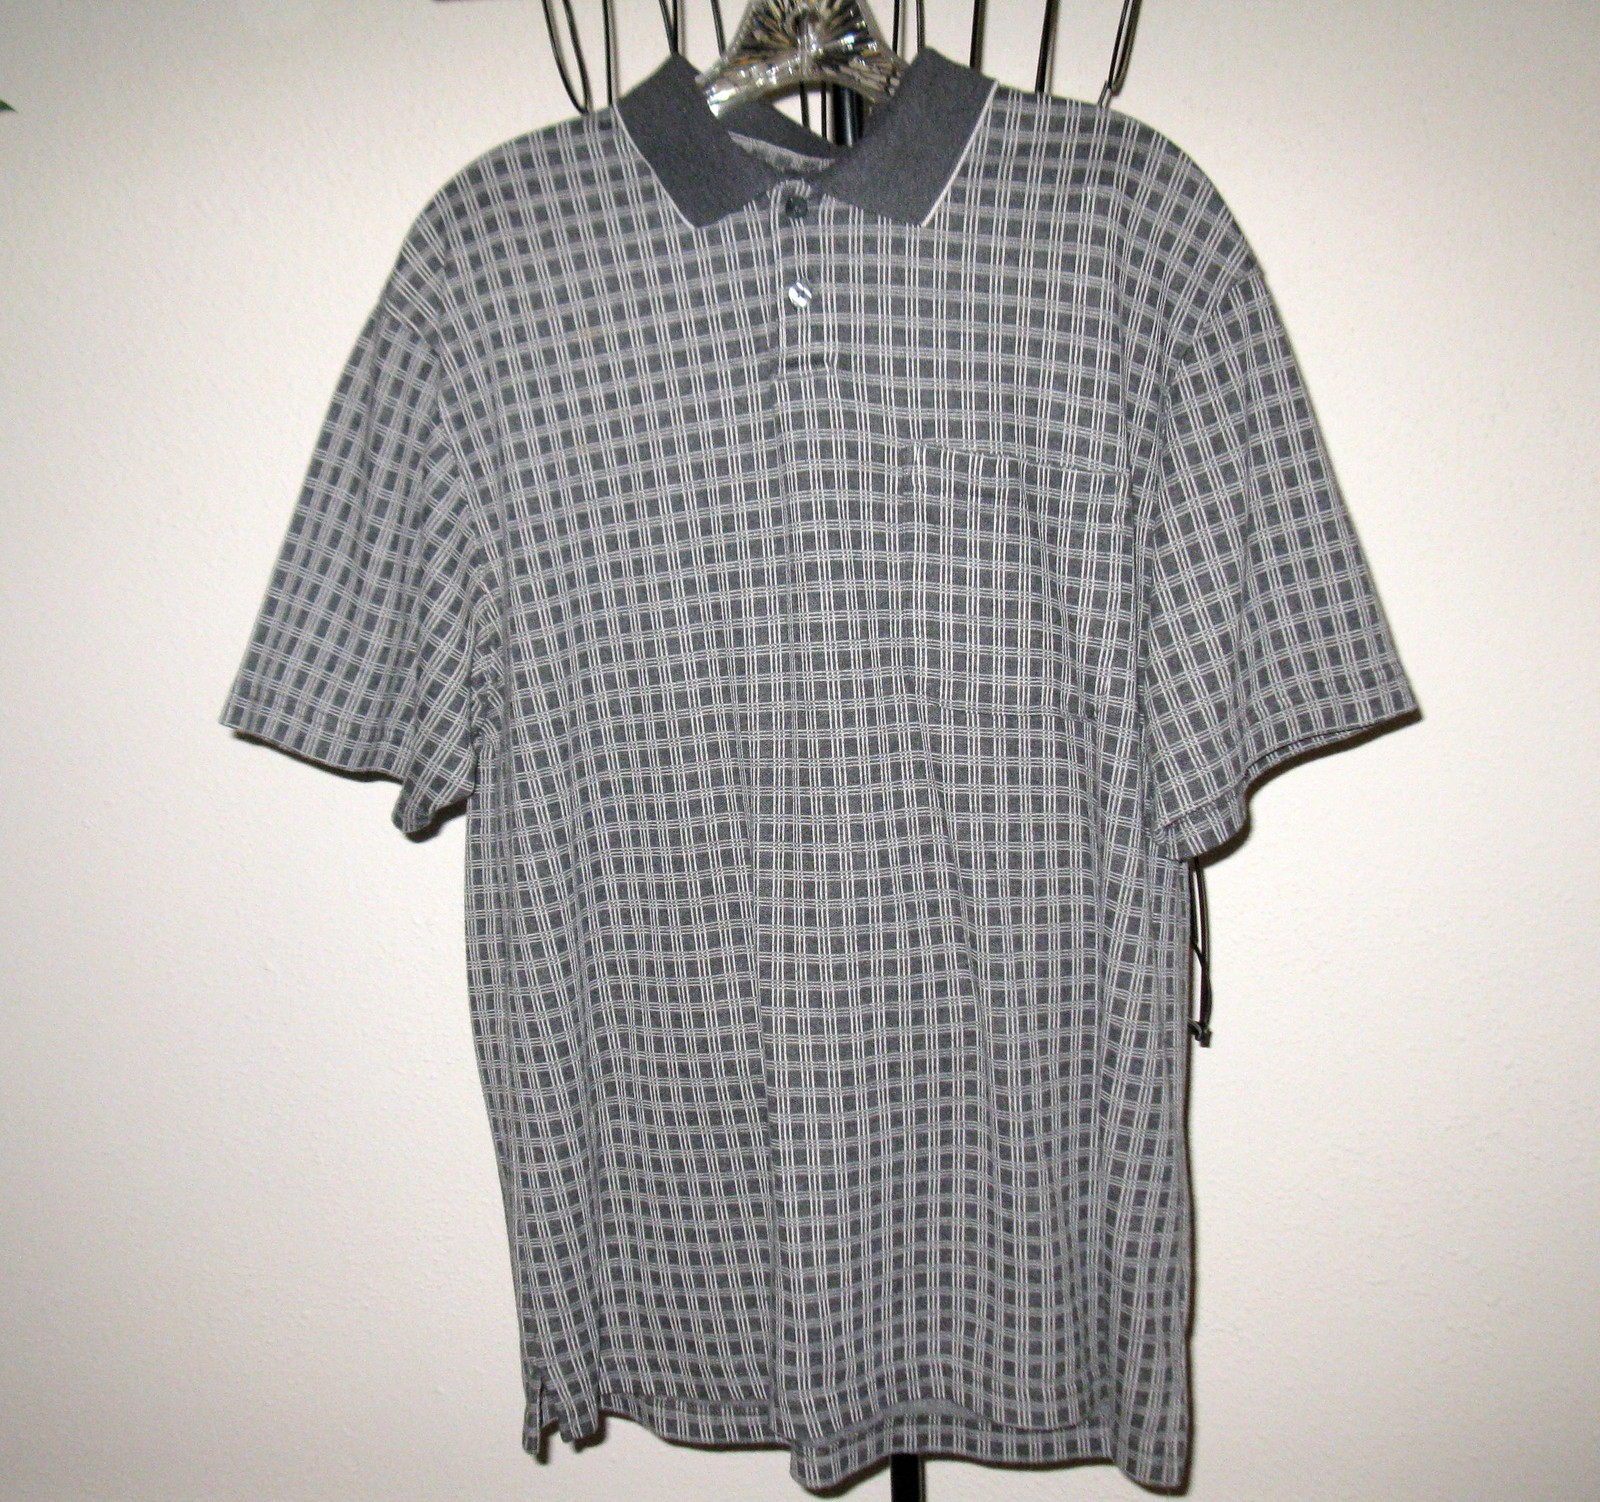 T846 grey golf shirt